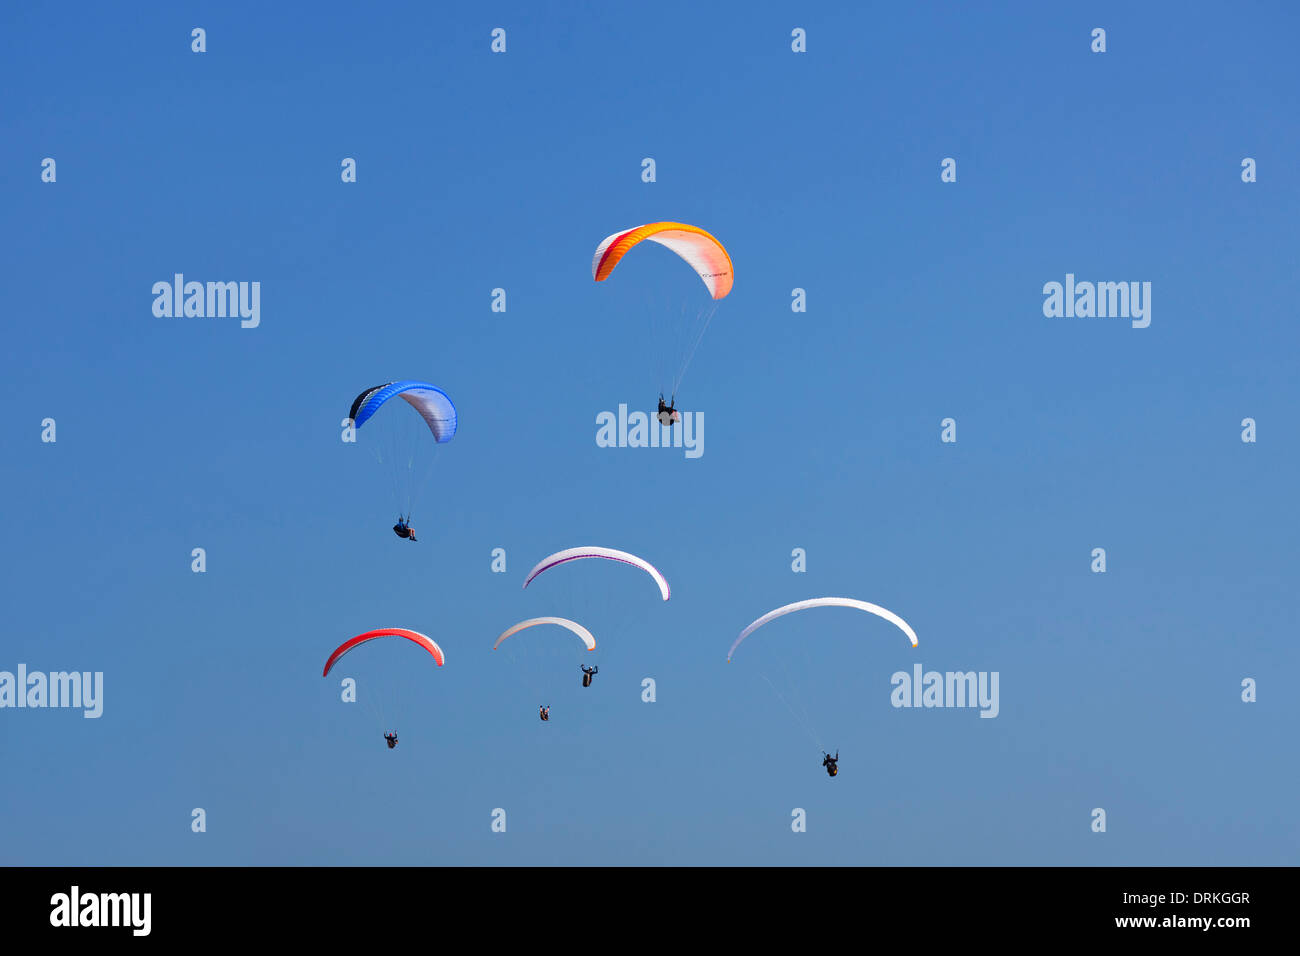 Paragliders Stock Photos & Paragliders Stock Images - Alamy